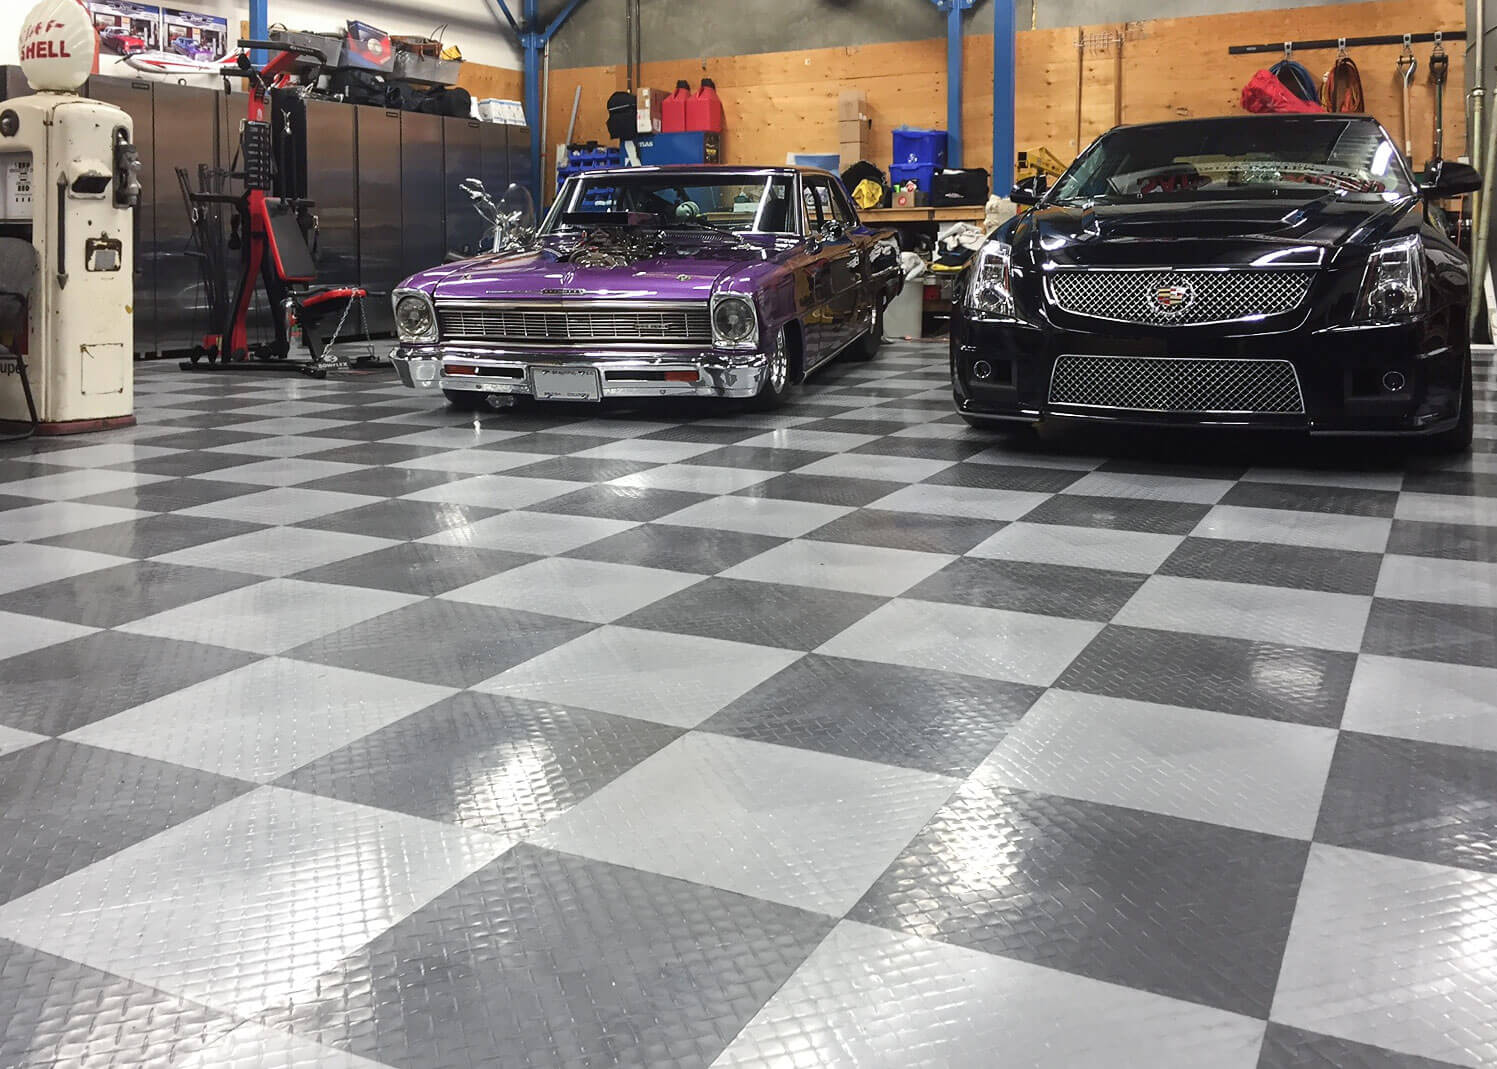 Shop floor with two cadillacs